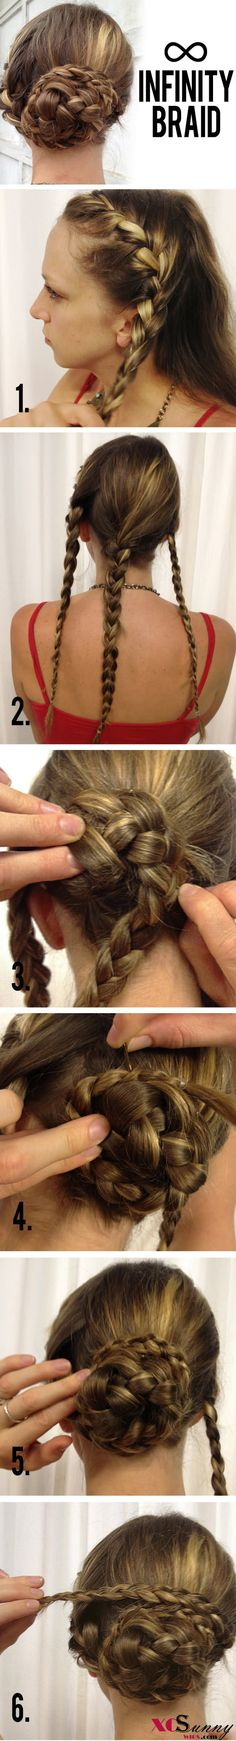 An Infinity Braid Tutorial That's Much Easier Than It Looks